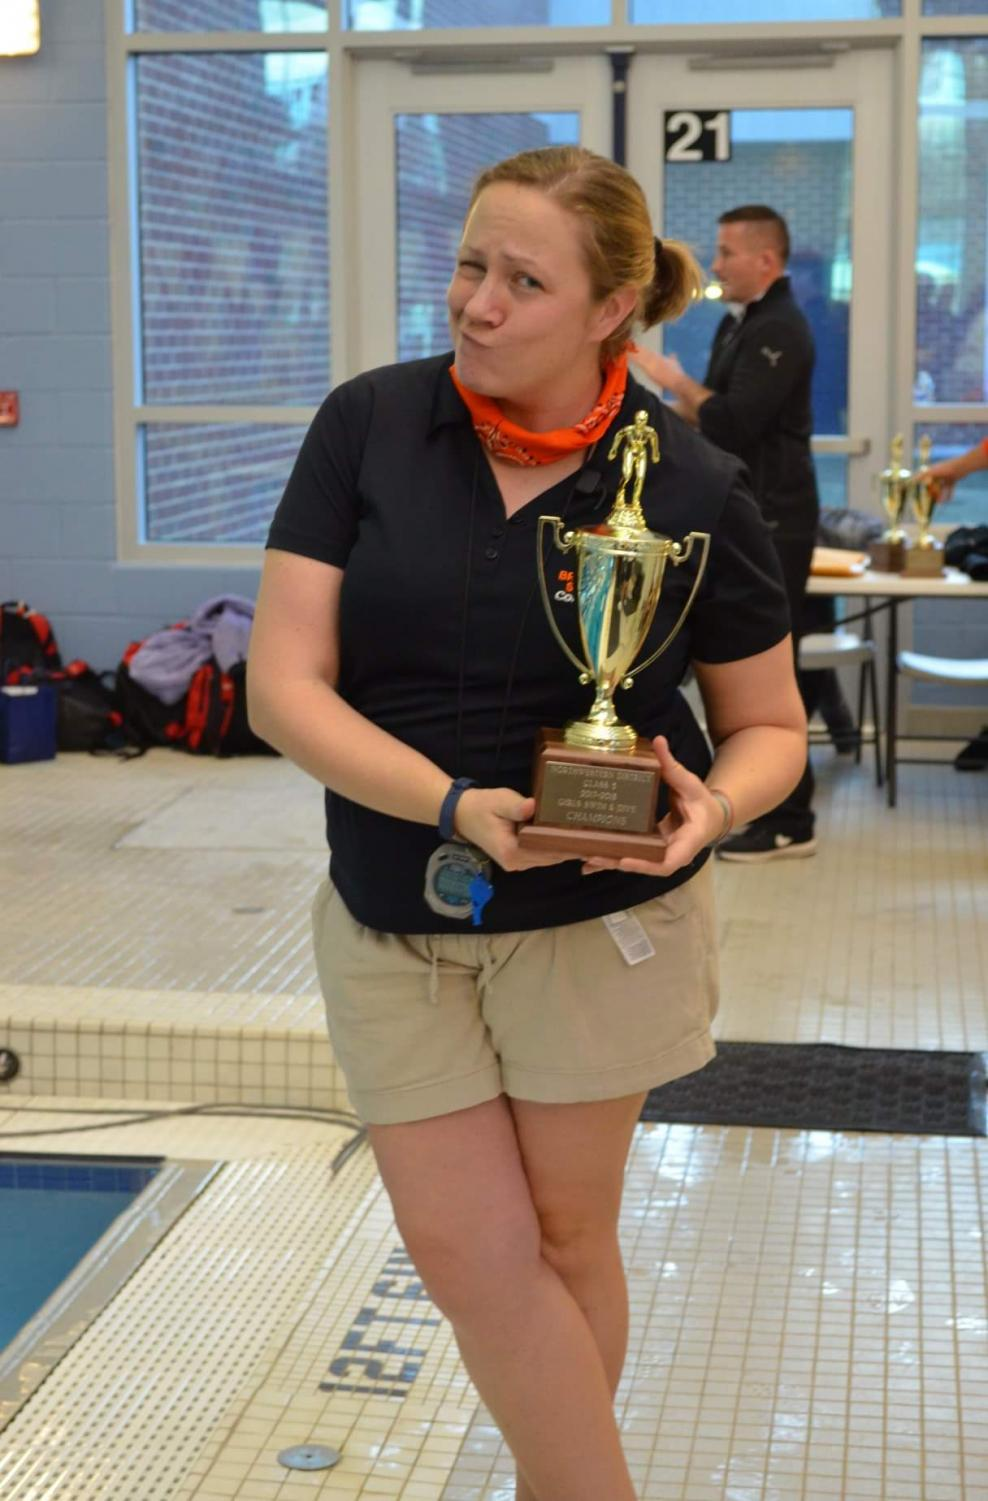 Swim coach Mrs. Livengood poses with their trophy after a successful meet.